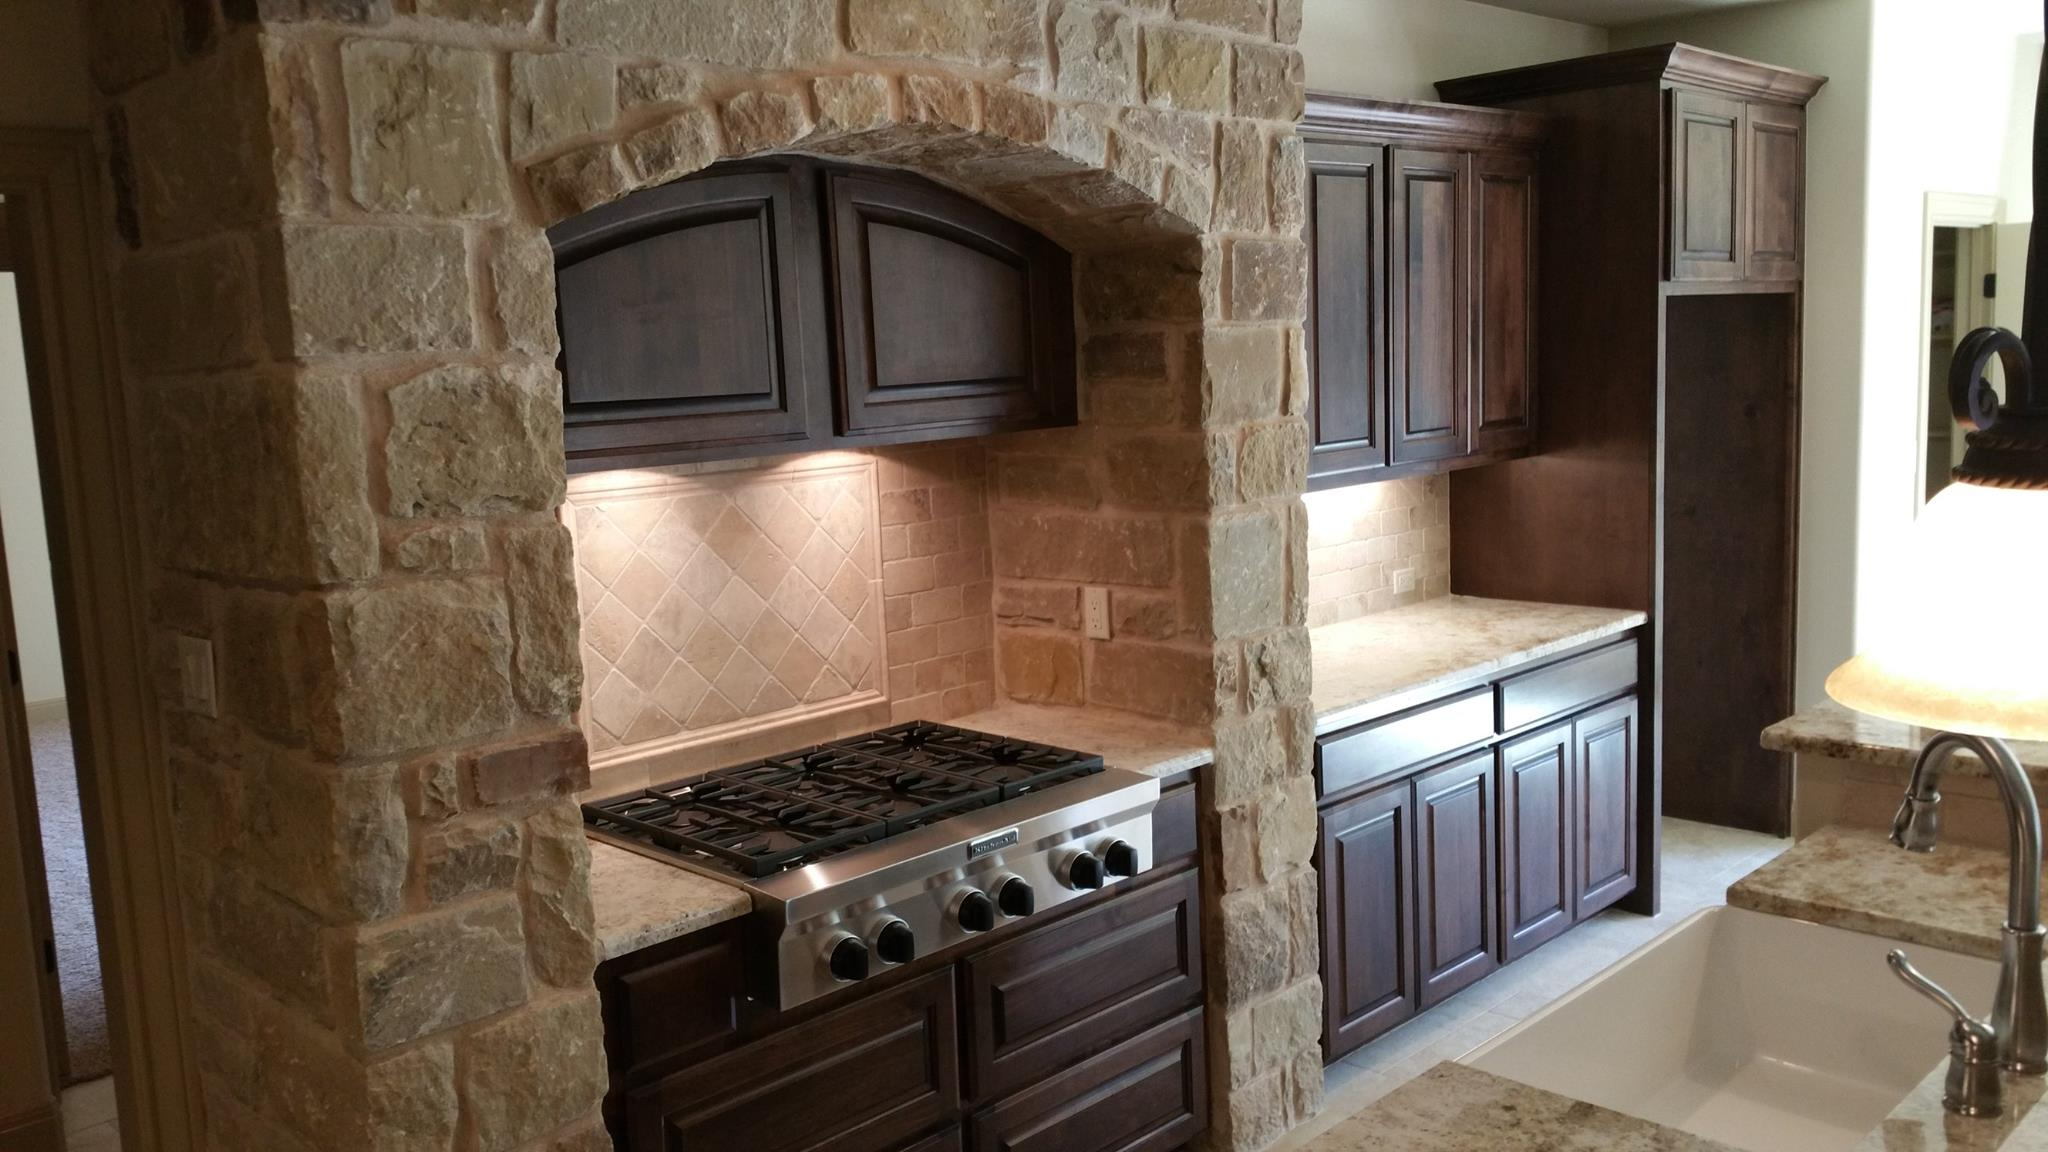 Custom kitchen cabinets with stone wall trim by JB Murphy Co.